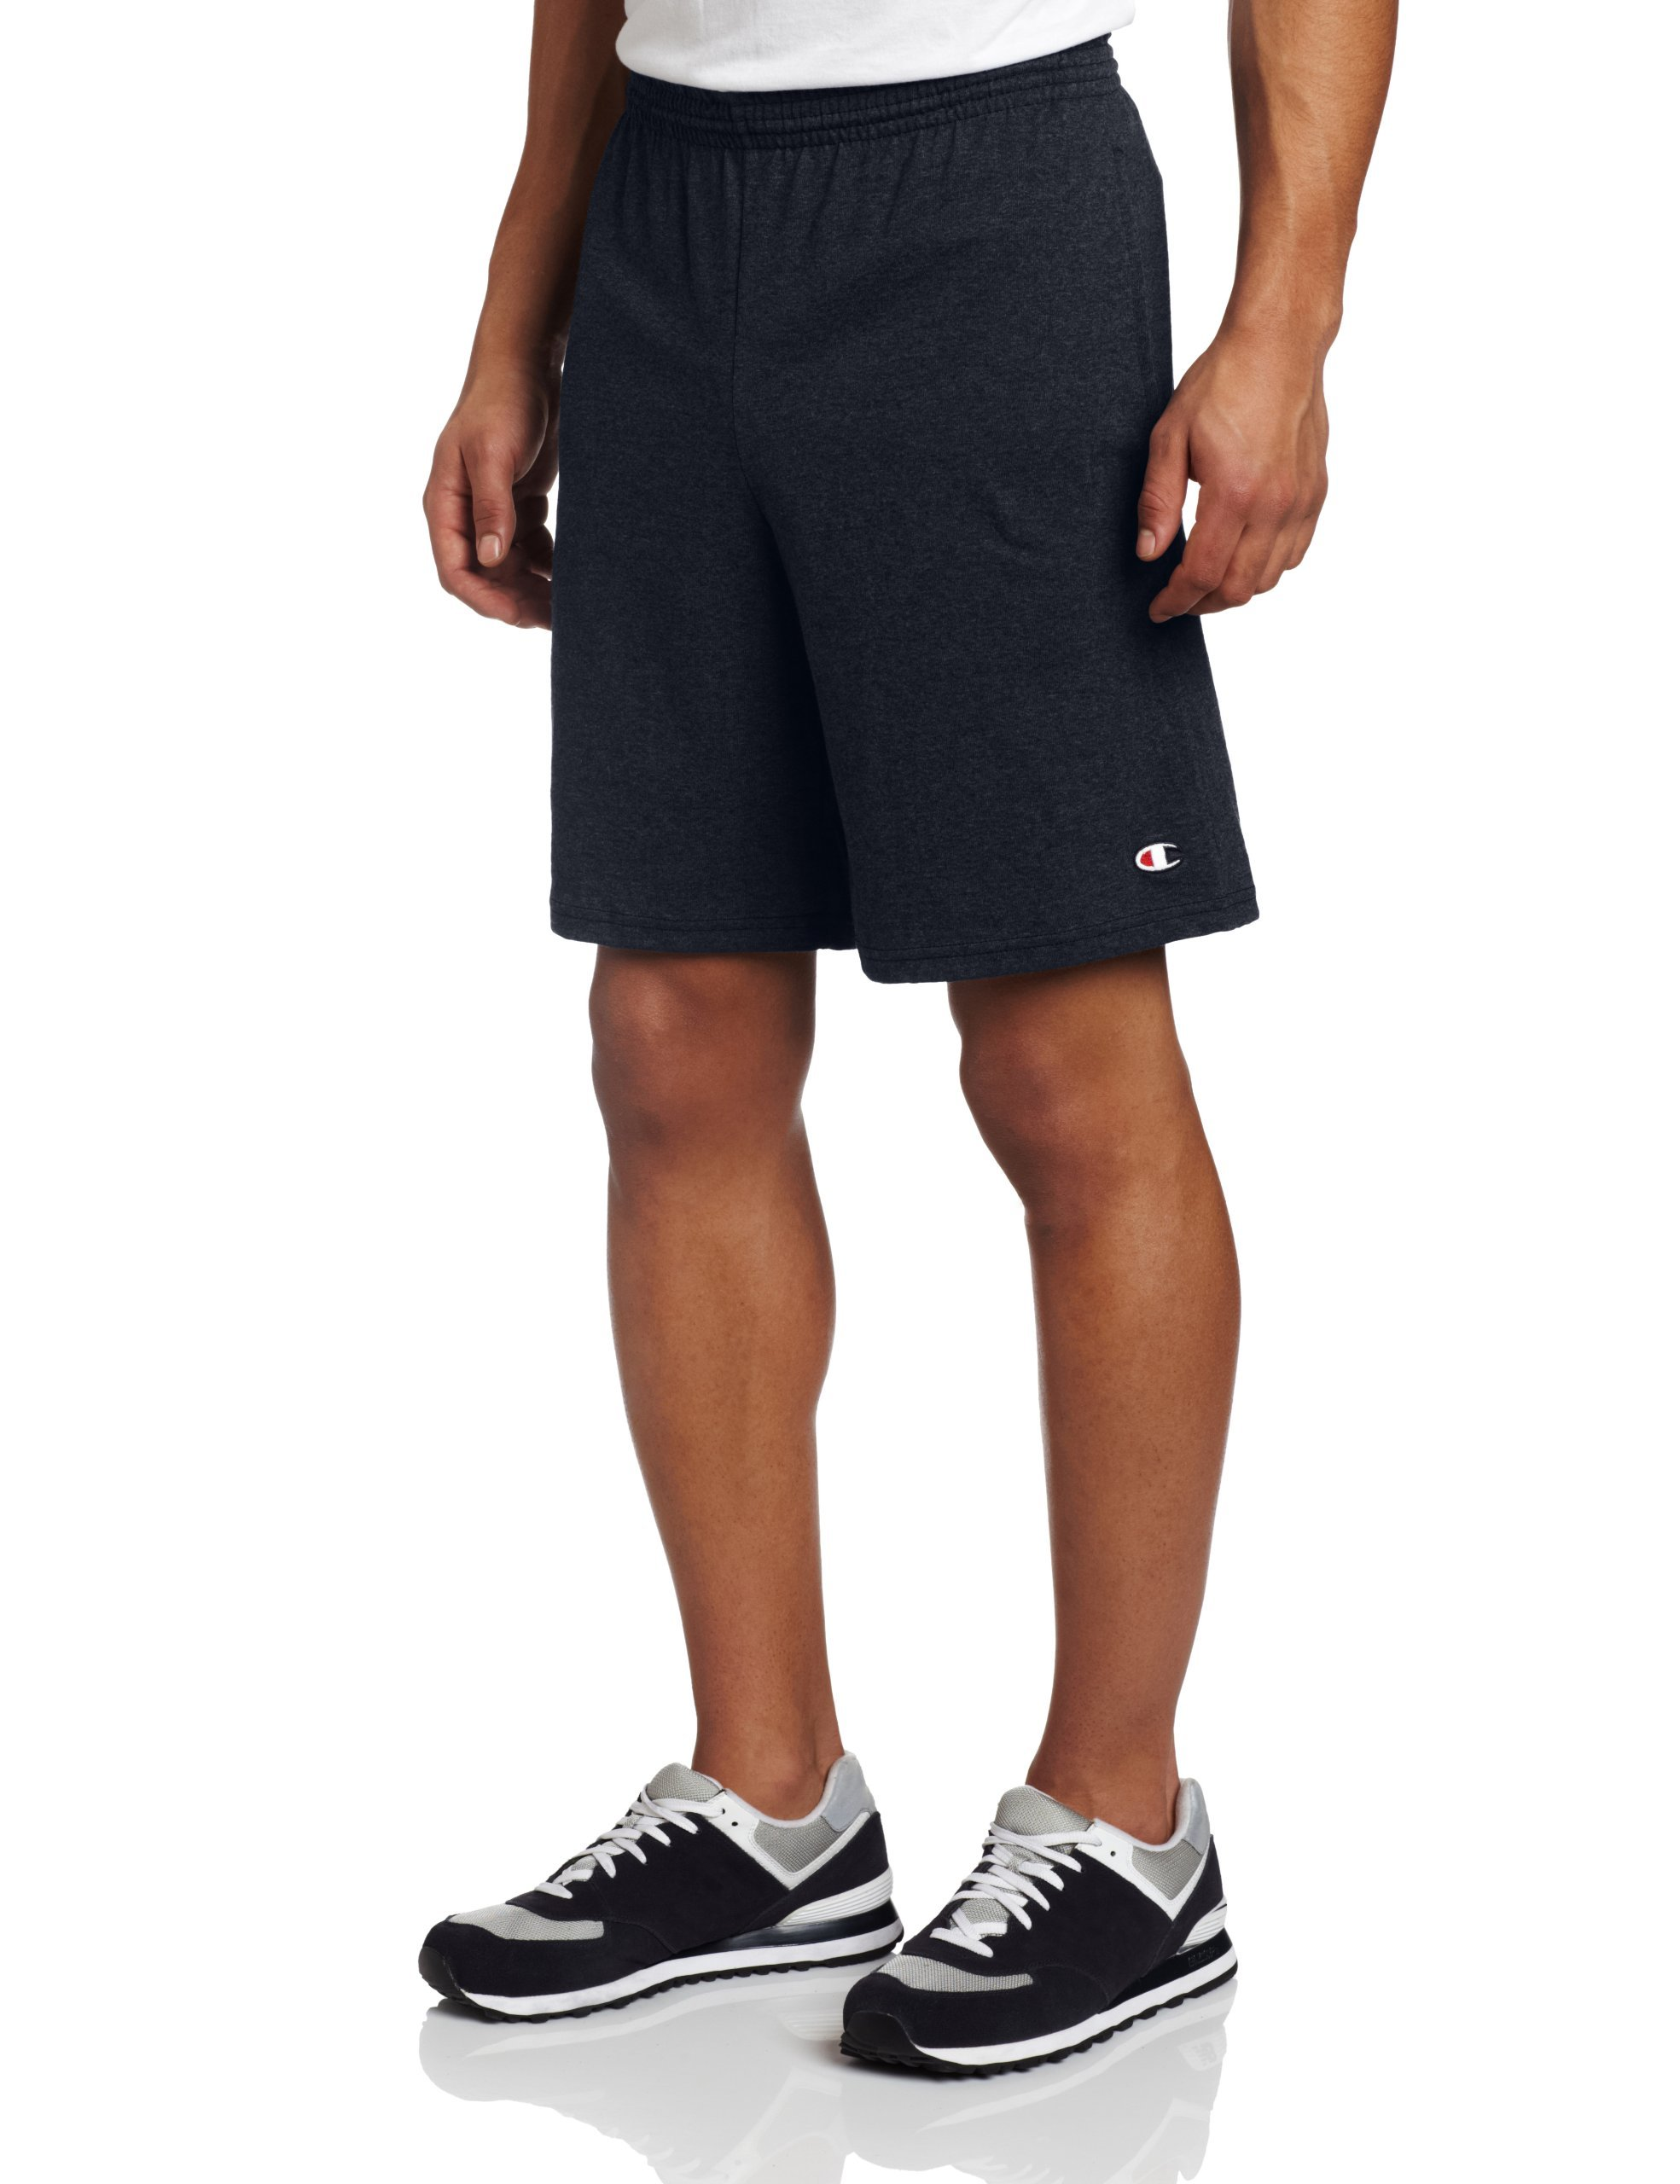 Champion Men's Jersey Short with Pockets, Navy, 6X-Large